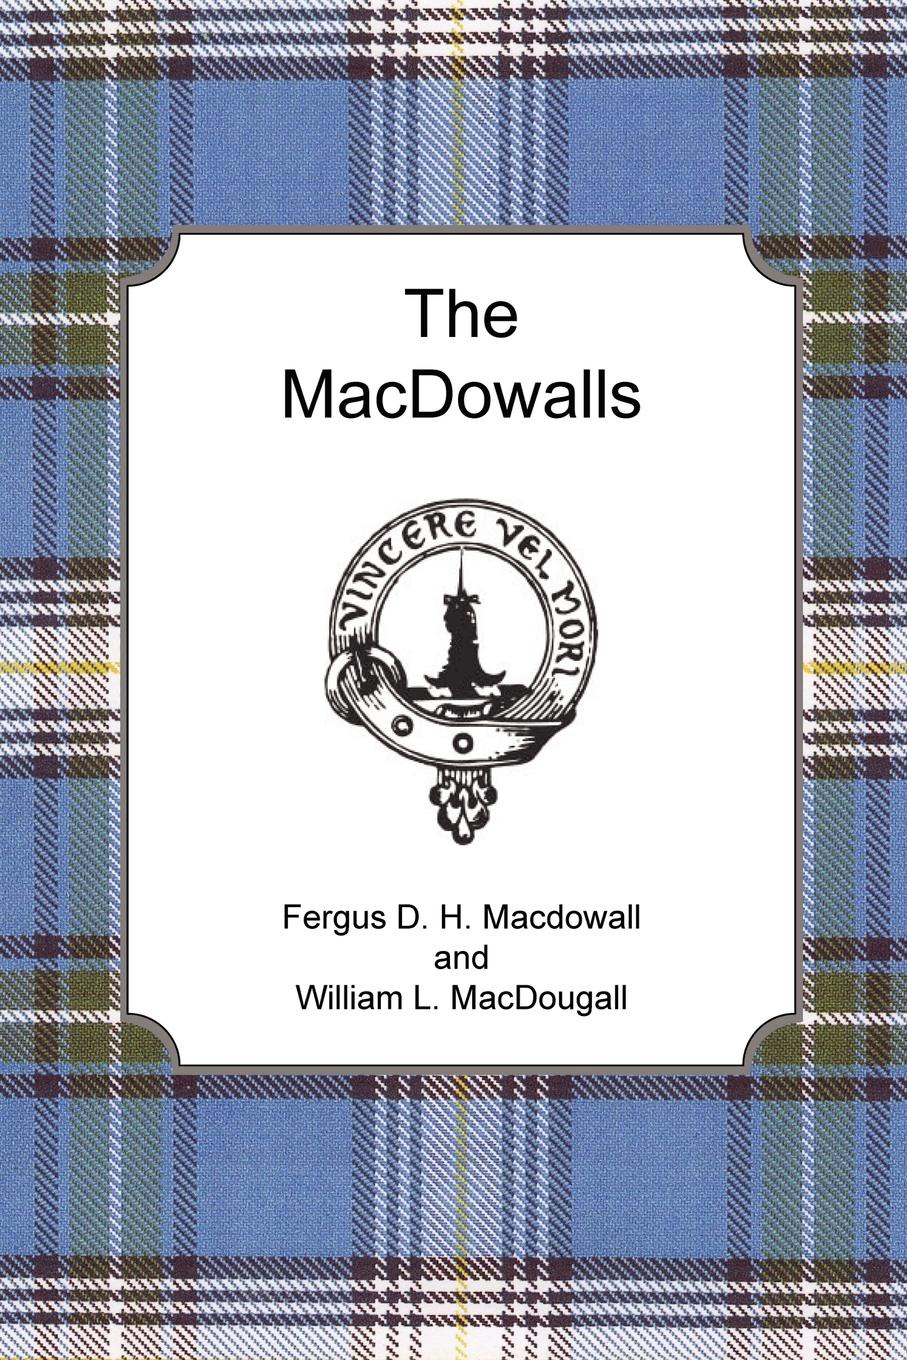 Fergus D. H. Macdowall, William L. MacDougall The MacDowalls william abbatt a history of the united states and its people from their earliest records to the present time volume 3